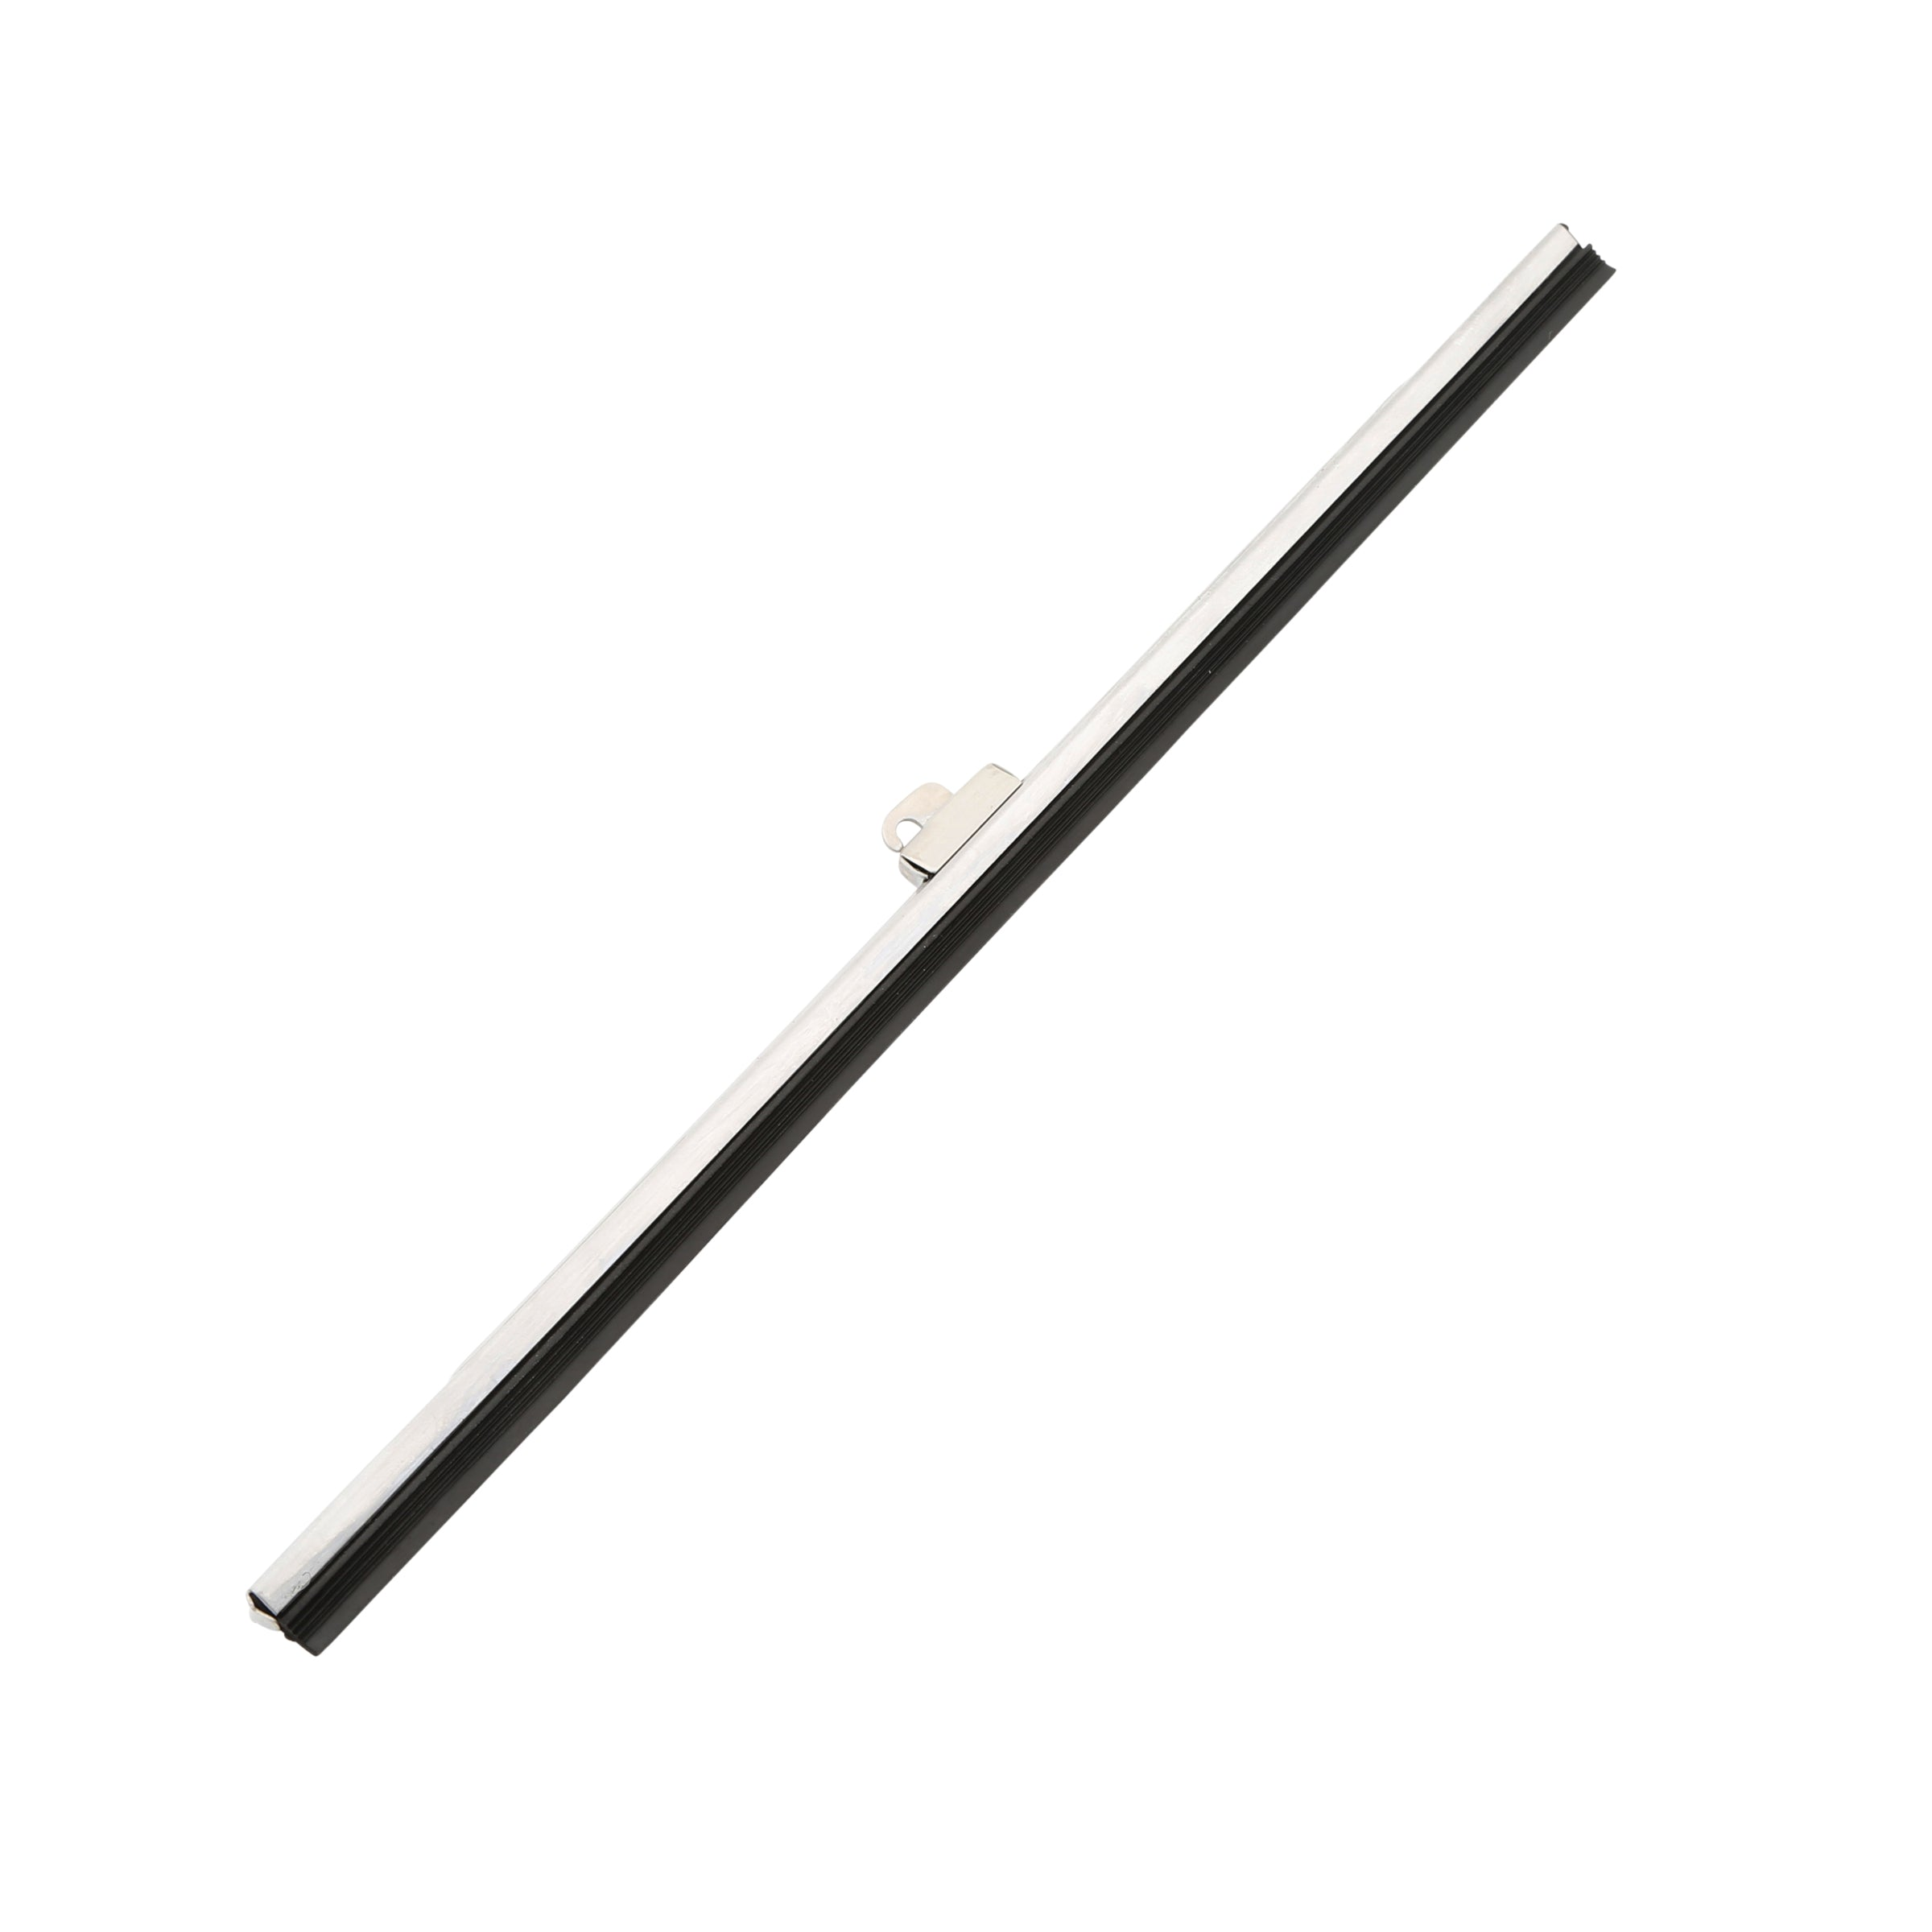 Windshield Wiper Blade (Hook & Saddle) • Universal 11